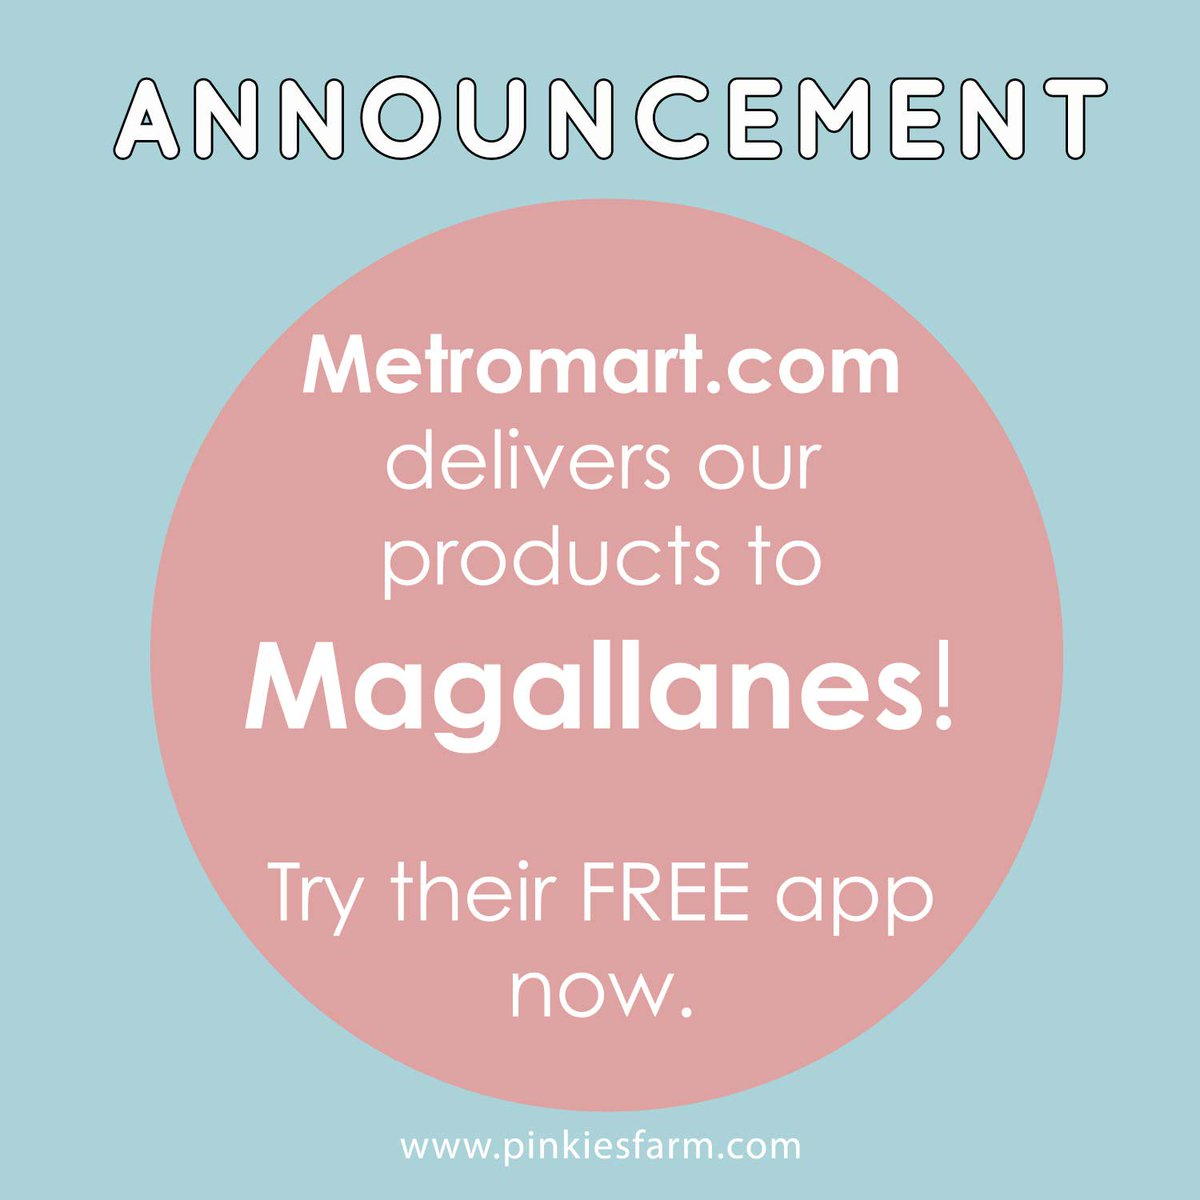 Magallanes peeps! We&#39;re coming to you via  http:// metromart.com  &nbsp;  ! :) Order now. #metromartph #dairy #magallanes <br>http://pic.twitter.com/t2LVhF8mty